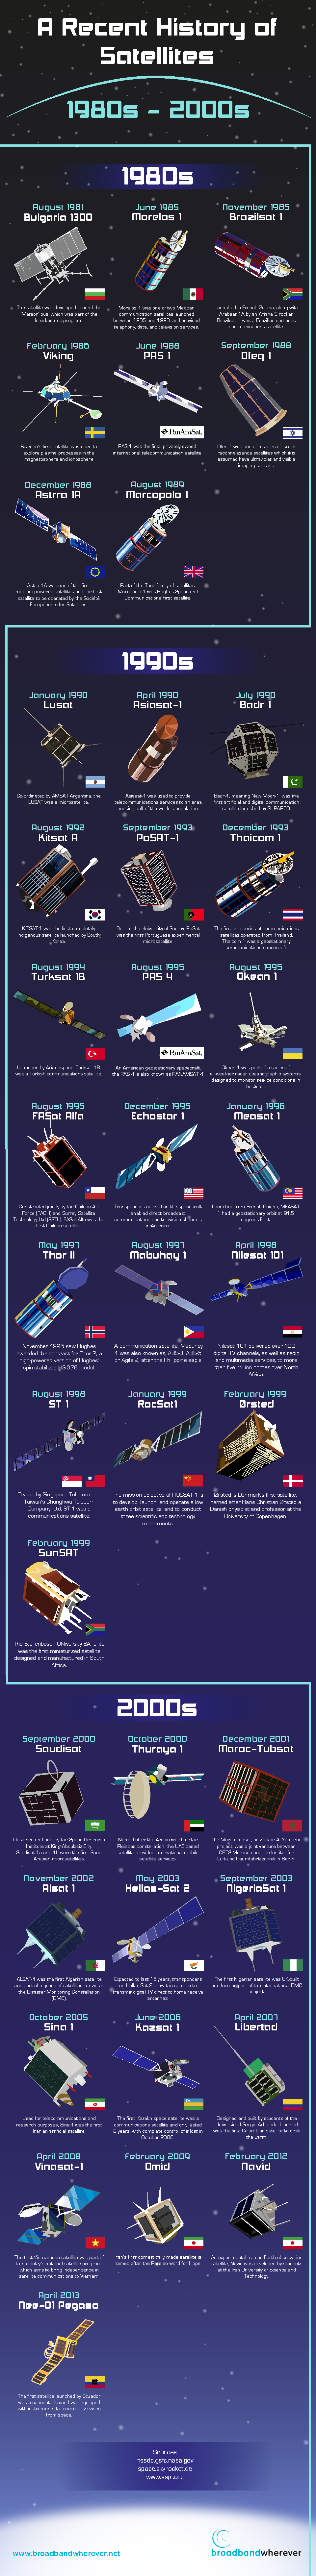 Infographic: A Recent History of Satellites